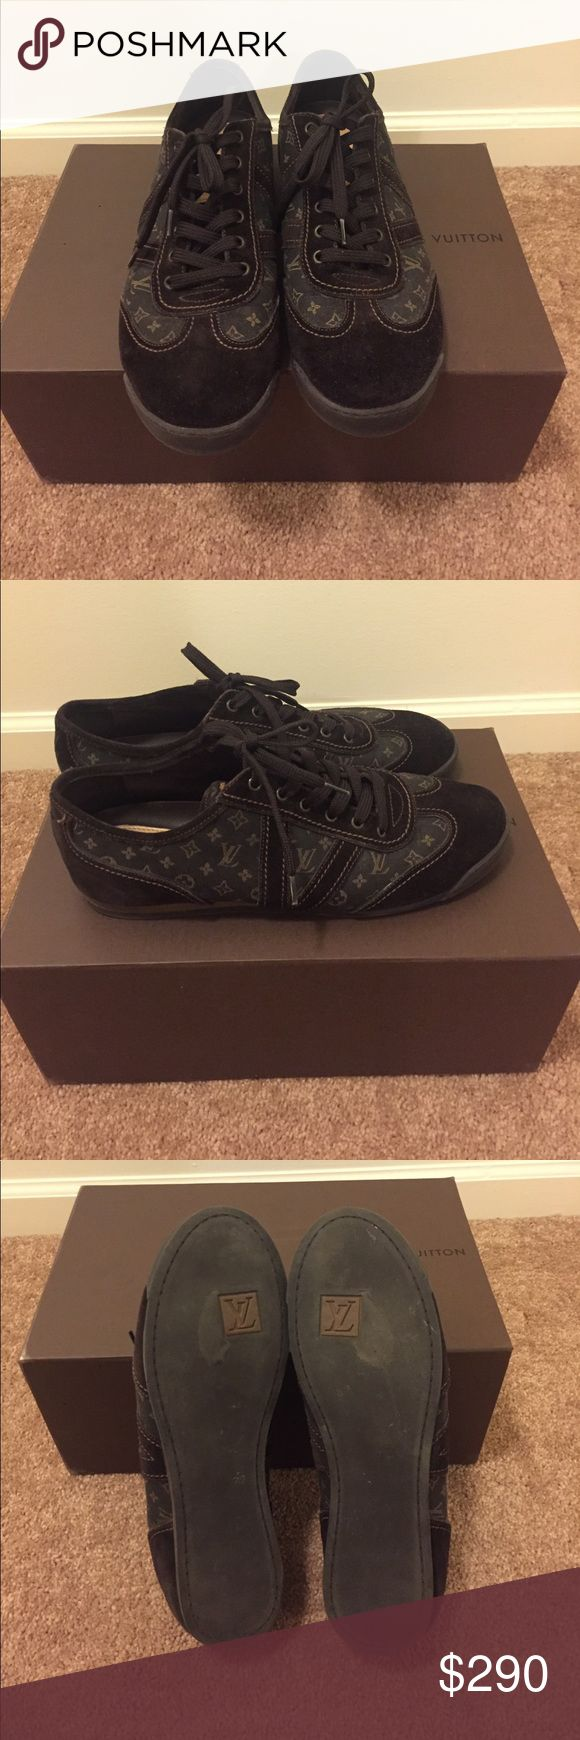 AUTHENTIC LOUIS VUITTON Men's shoes Gently used brown men's sneakers with LOUIS logo on them. Extra laces included. Louis Vuitton Shoes Sneakers